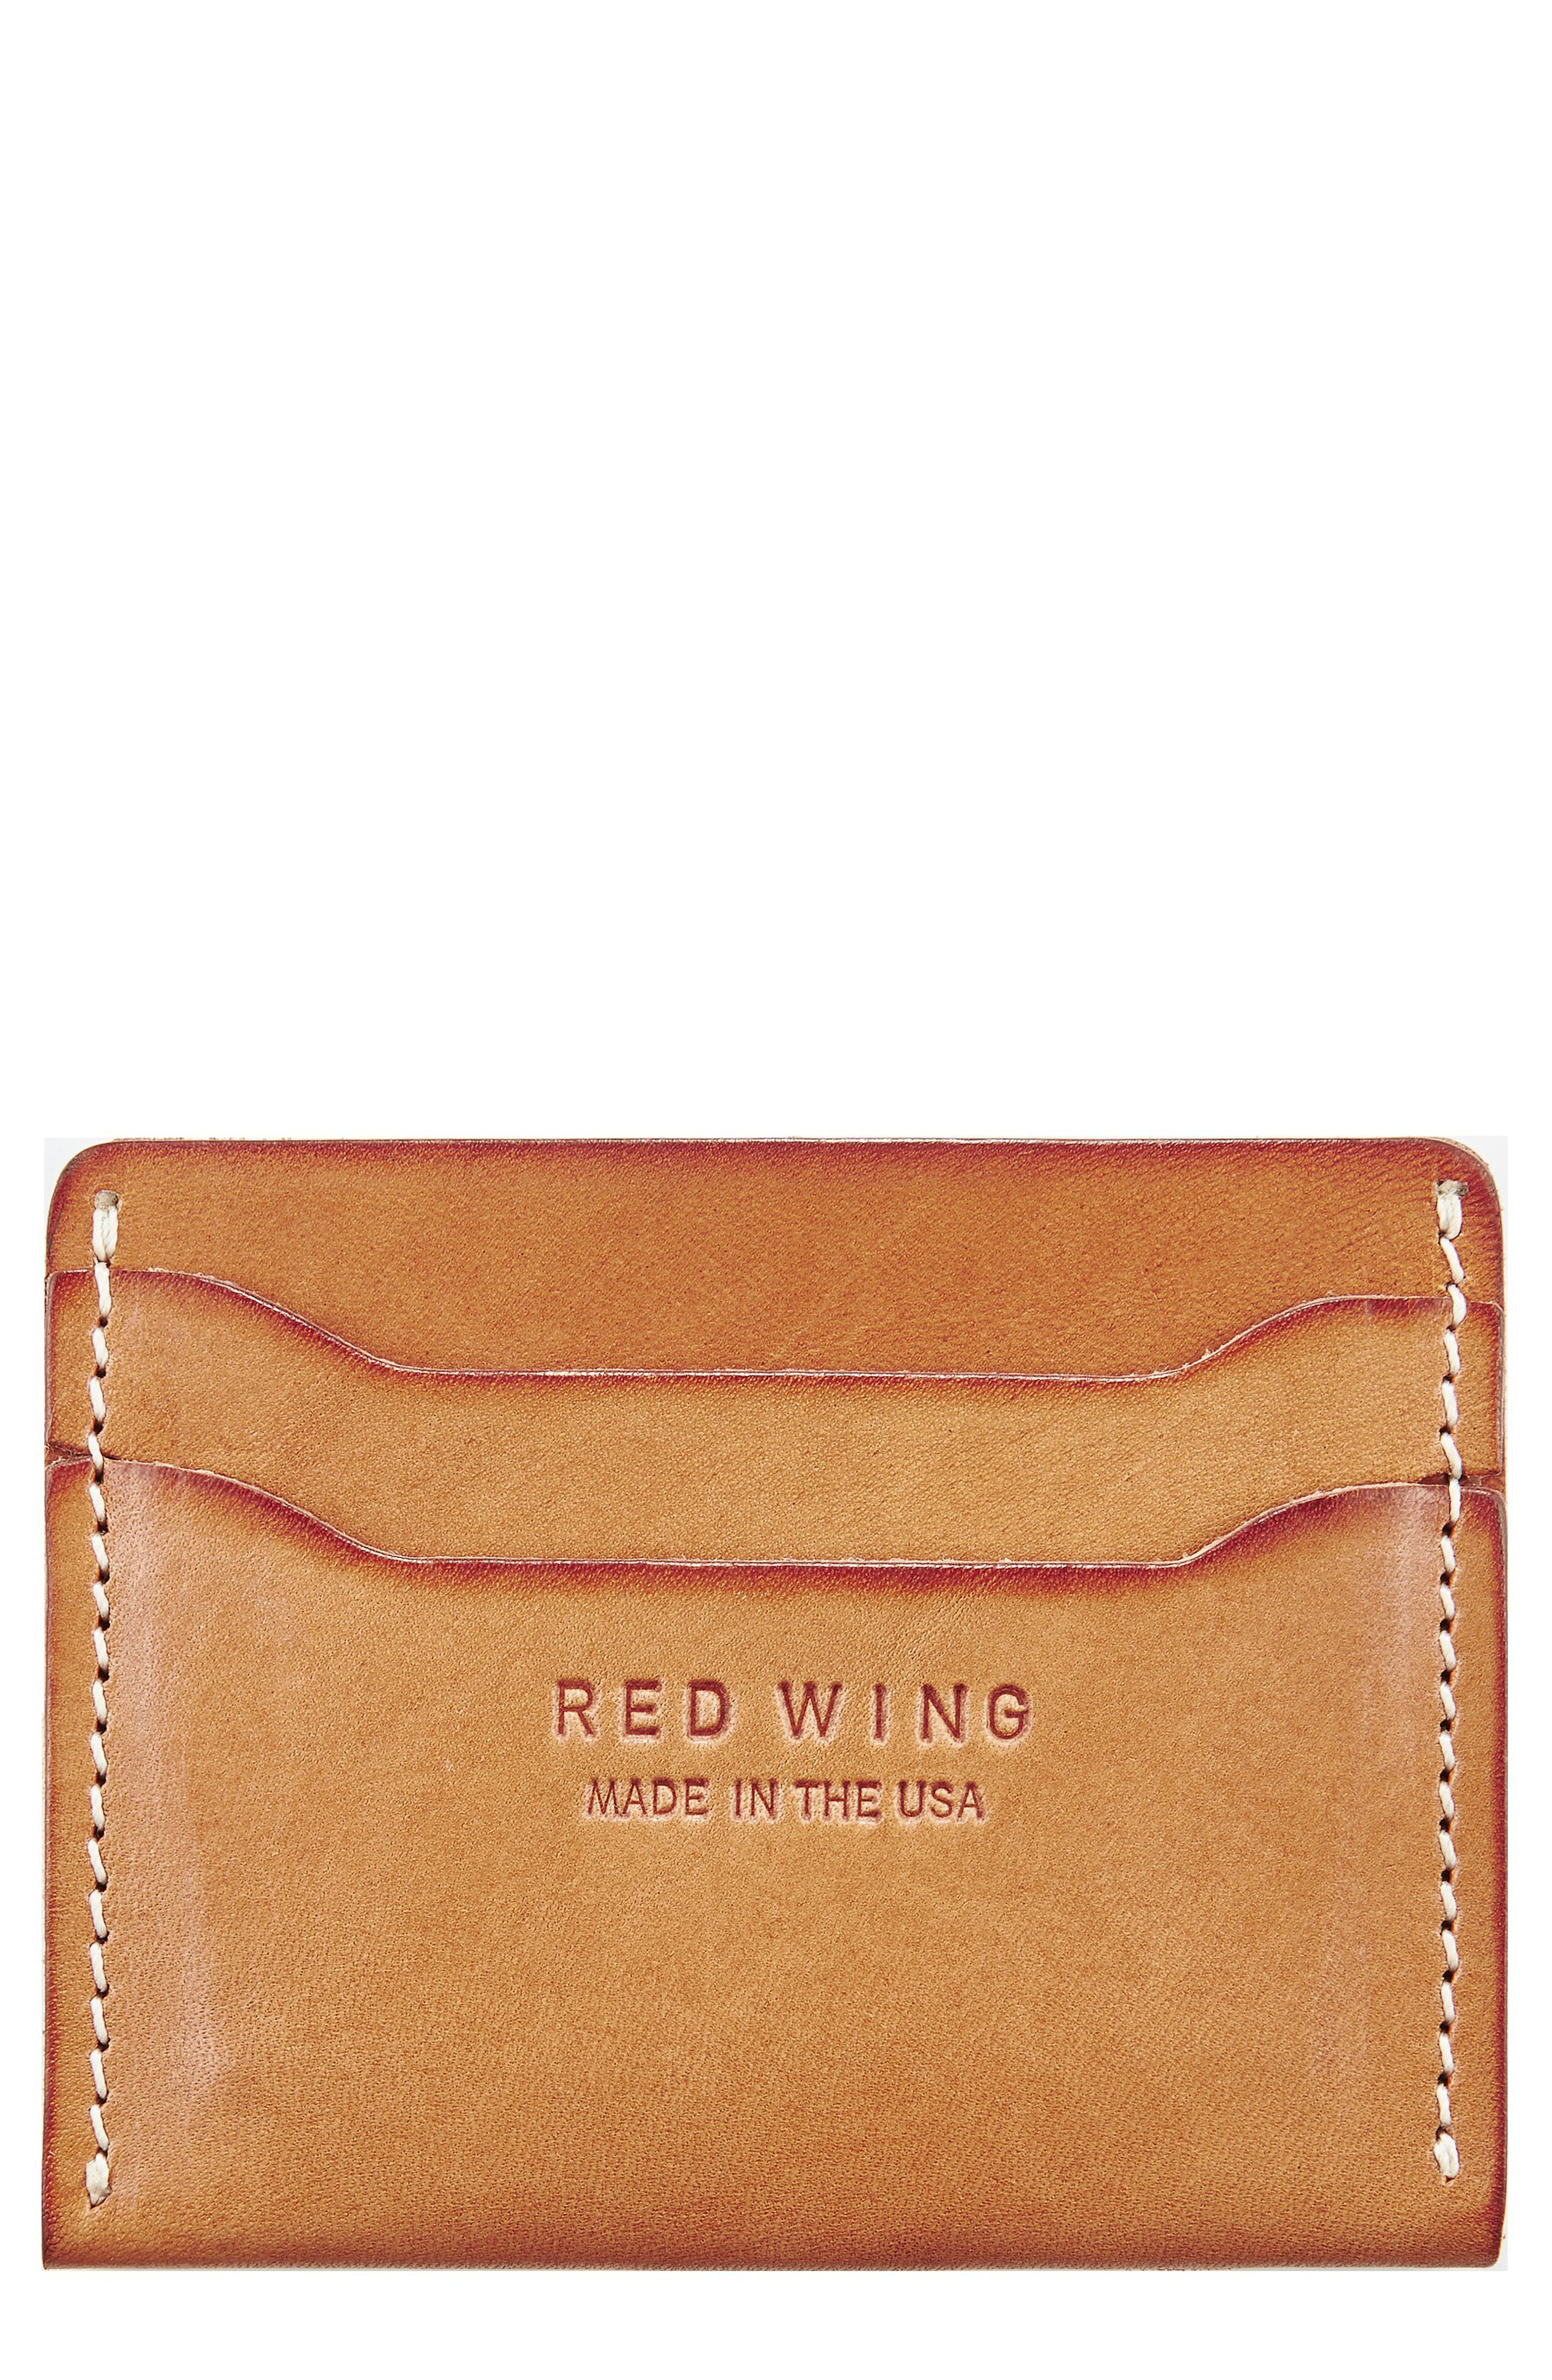 Leather Card Case,                         Main,                         color, VEGETABLE- TANNED